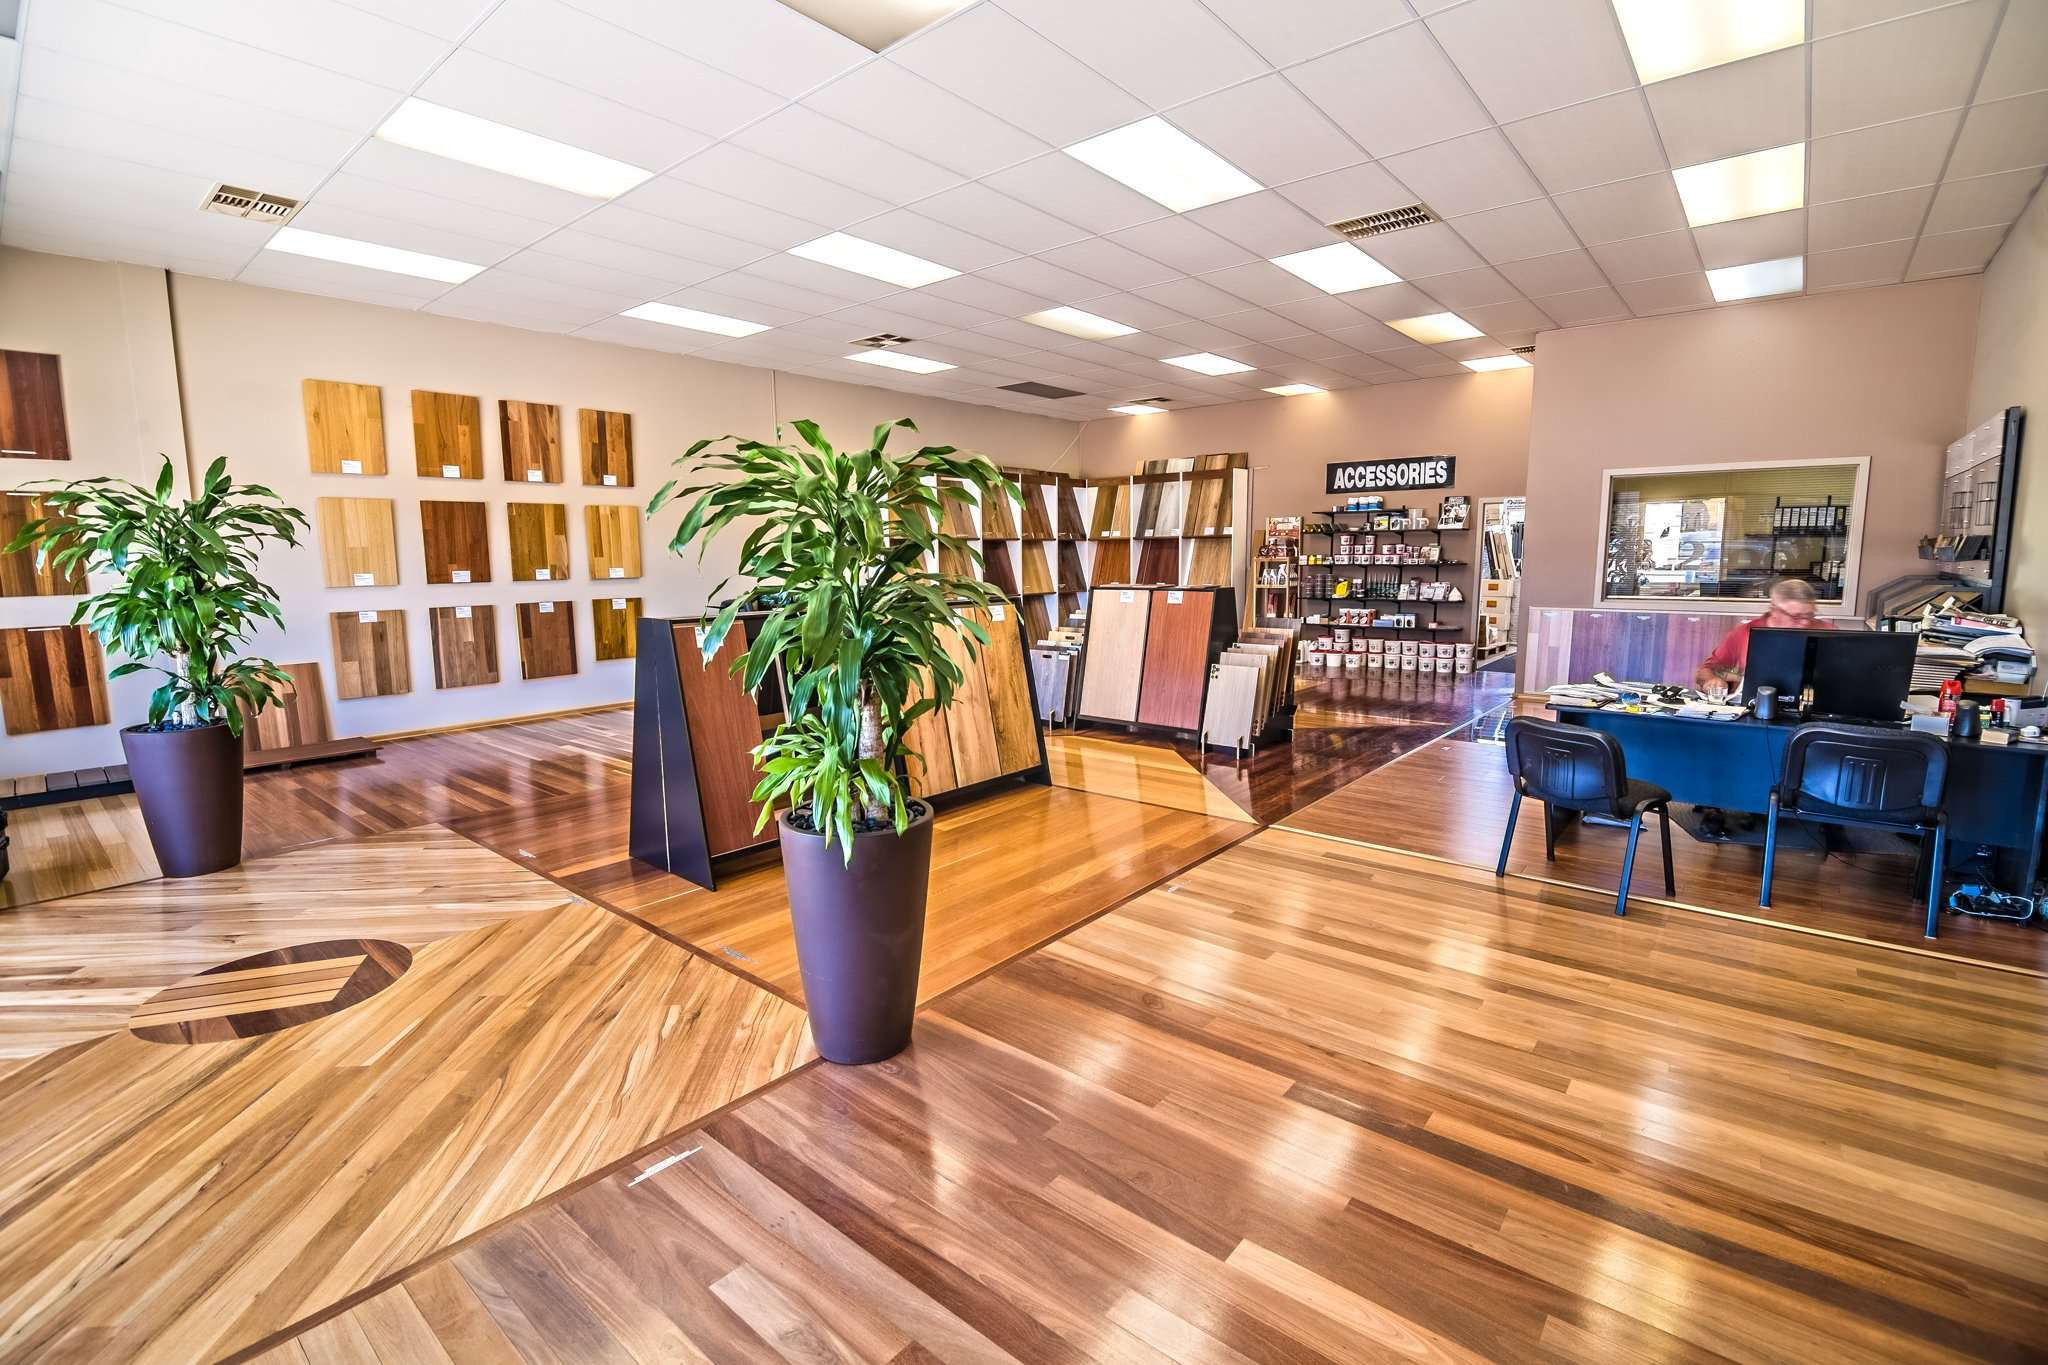 bamboo hardwood flooring prices of wood floor price lists a1 wood floors for 4 1451 albany hwy cannington